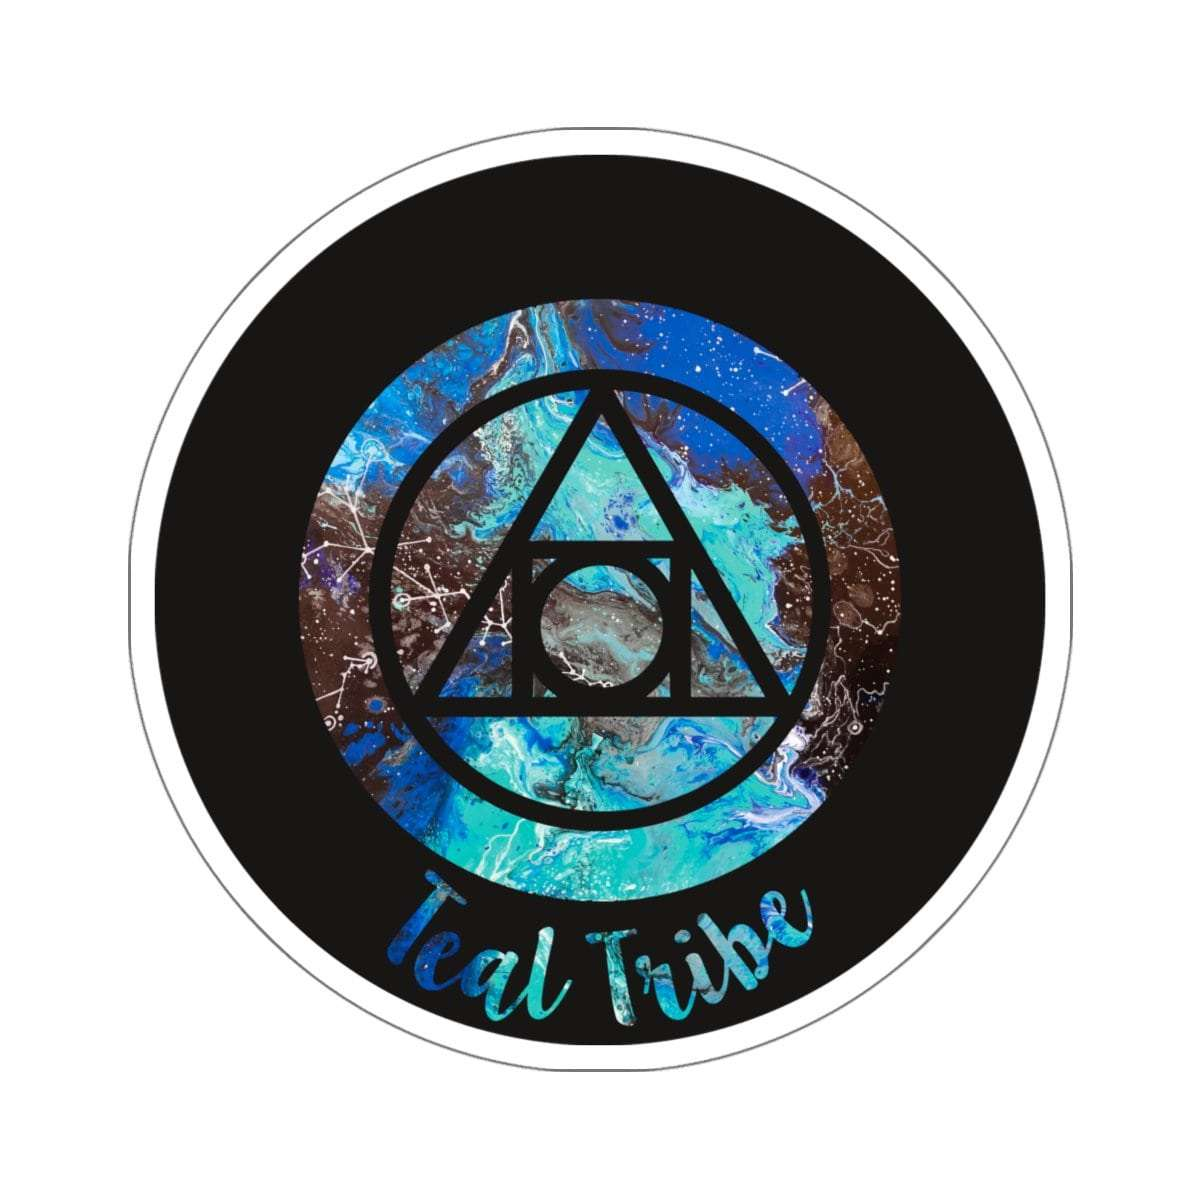 Teal Tribe Stickers